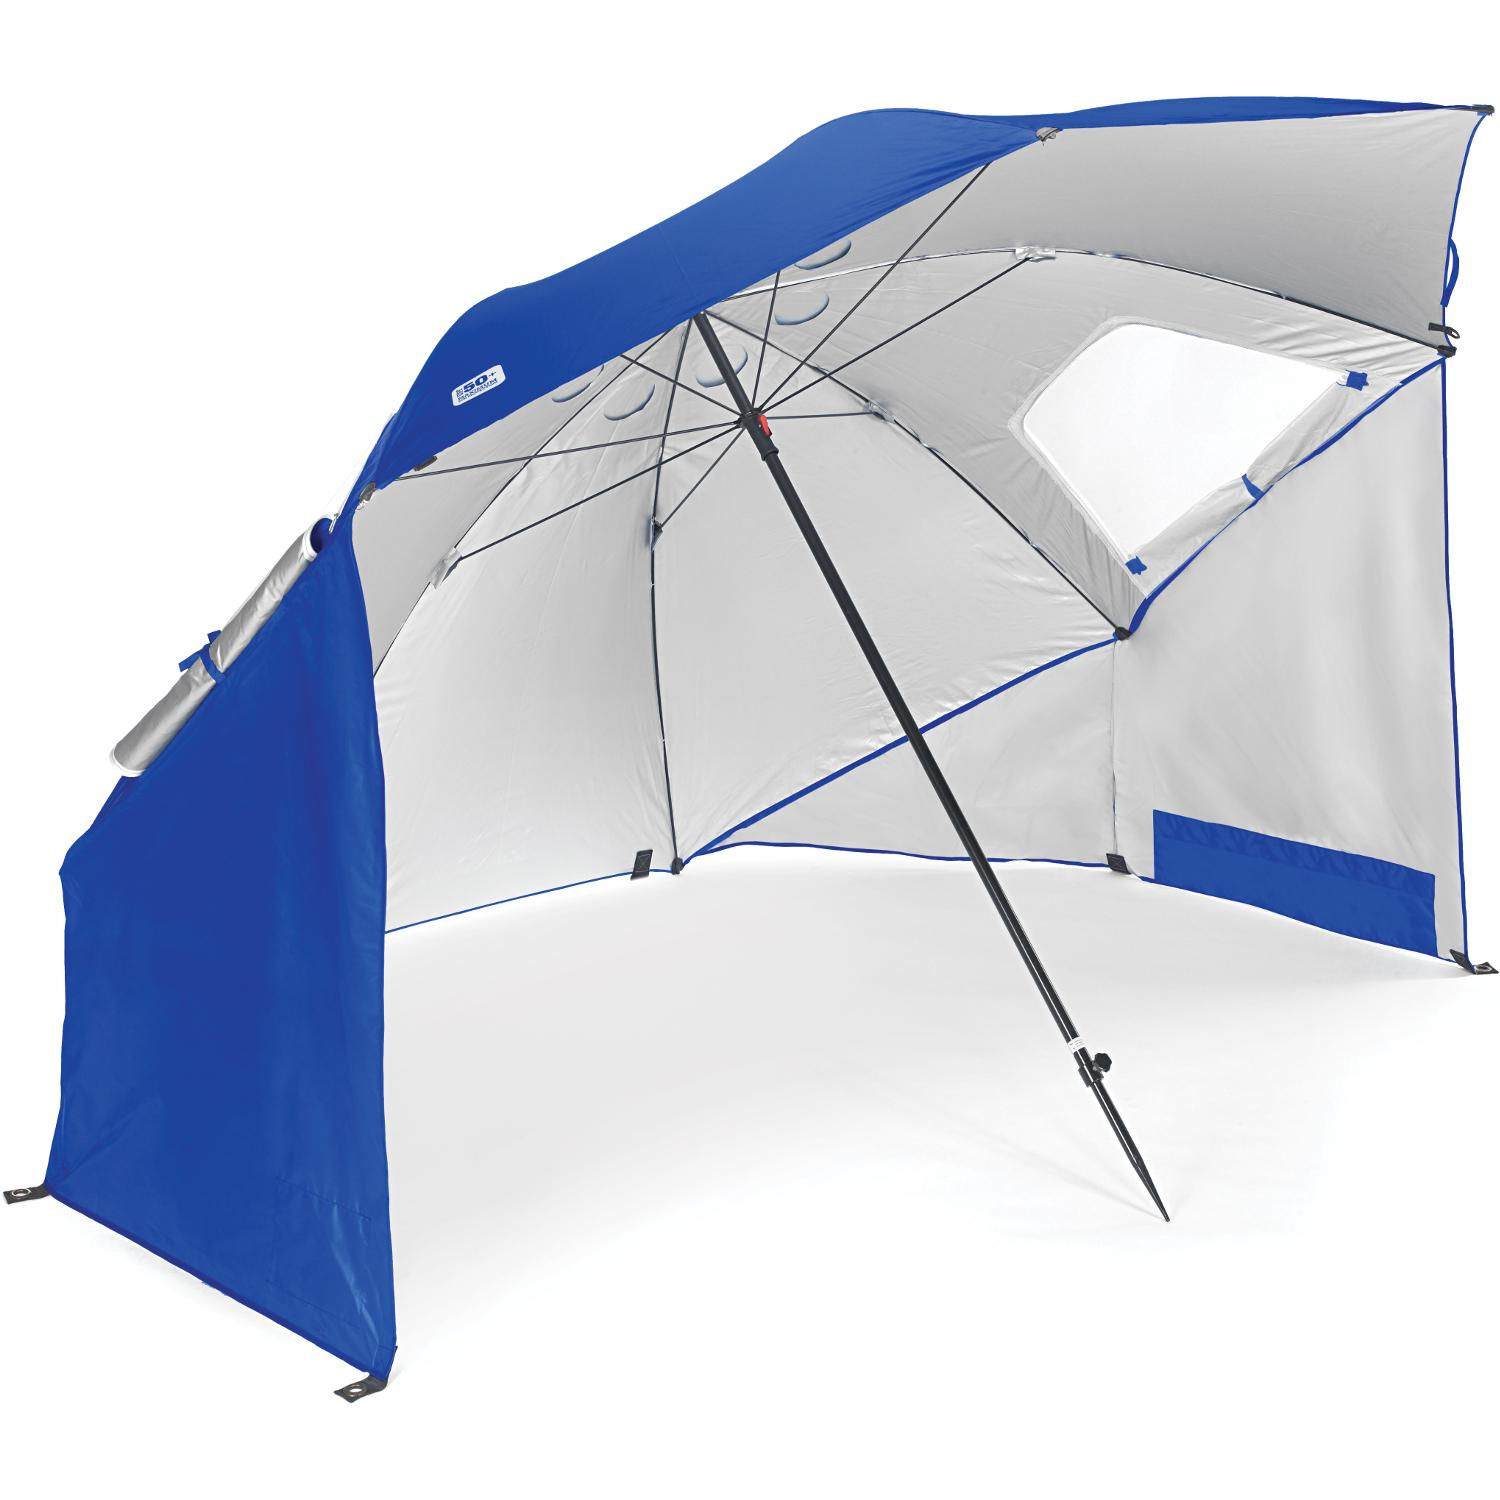 Sport-Brella All Weather and Sun Shelter  sc 1 st  Amazon.com & Amazon.com: Sport-Brella Portable All-Weather and Sun Umbrella. 8 ... islam-shia.org